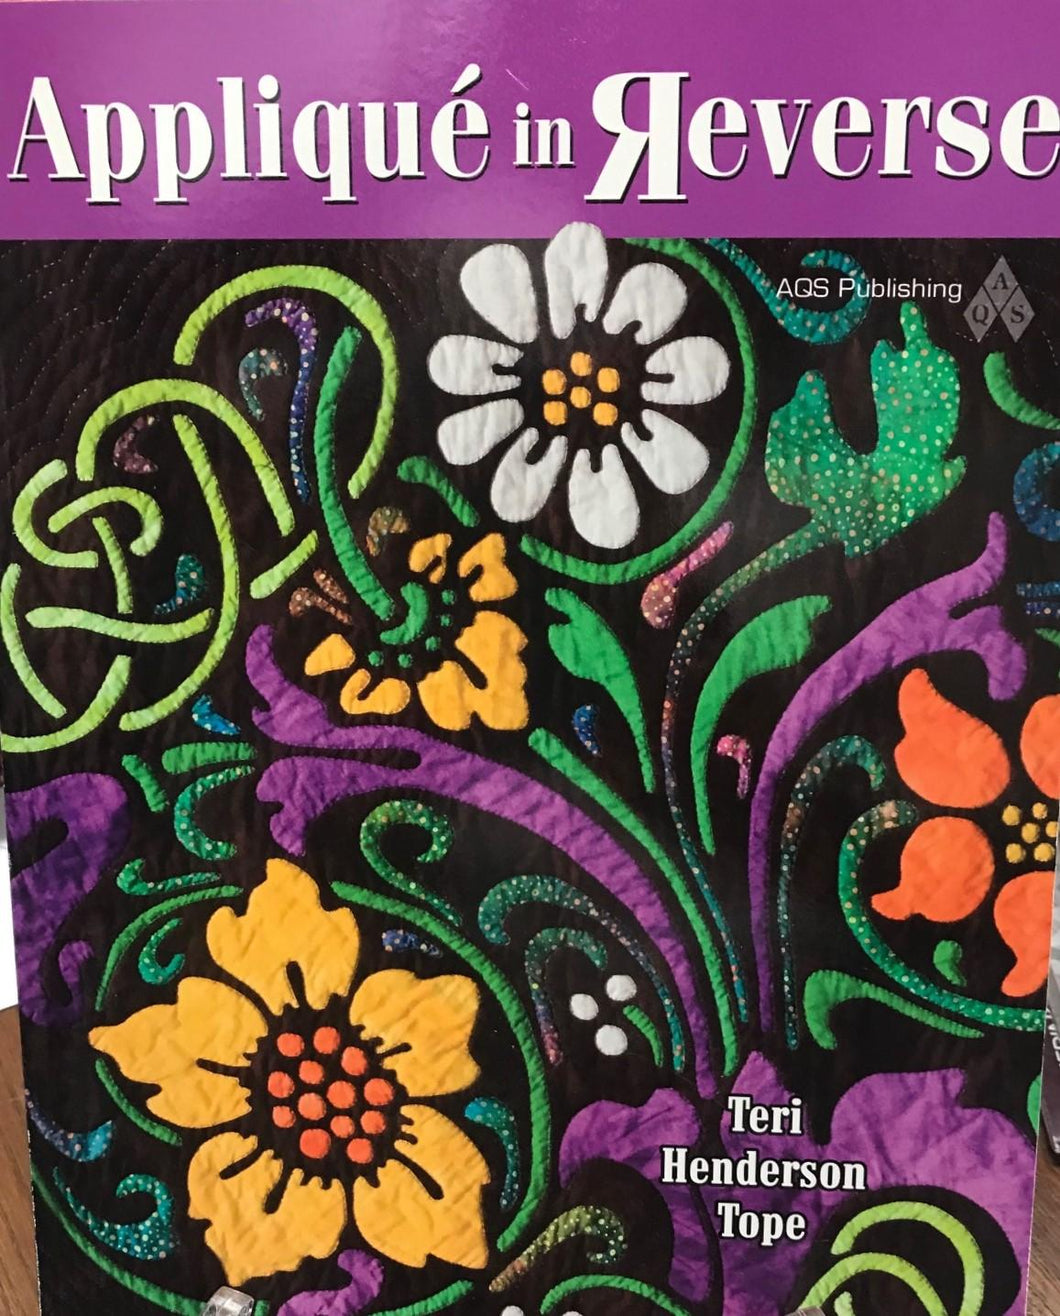 Applique in Reverse